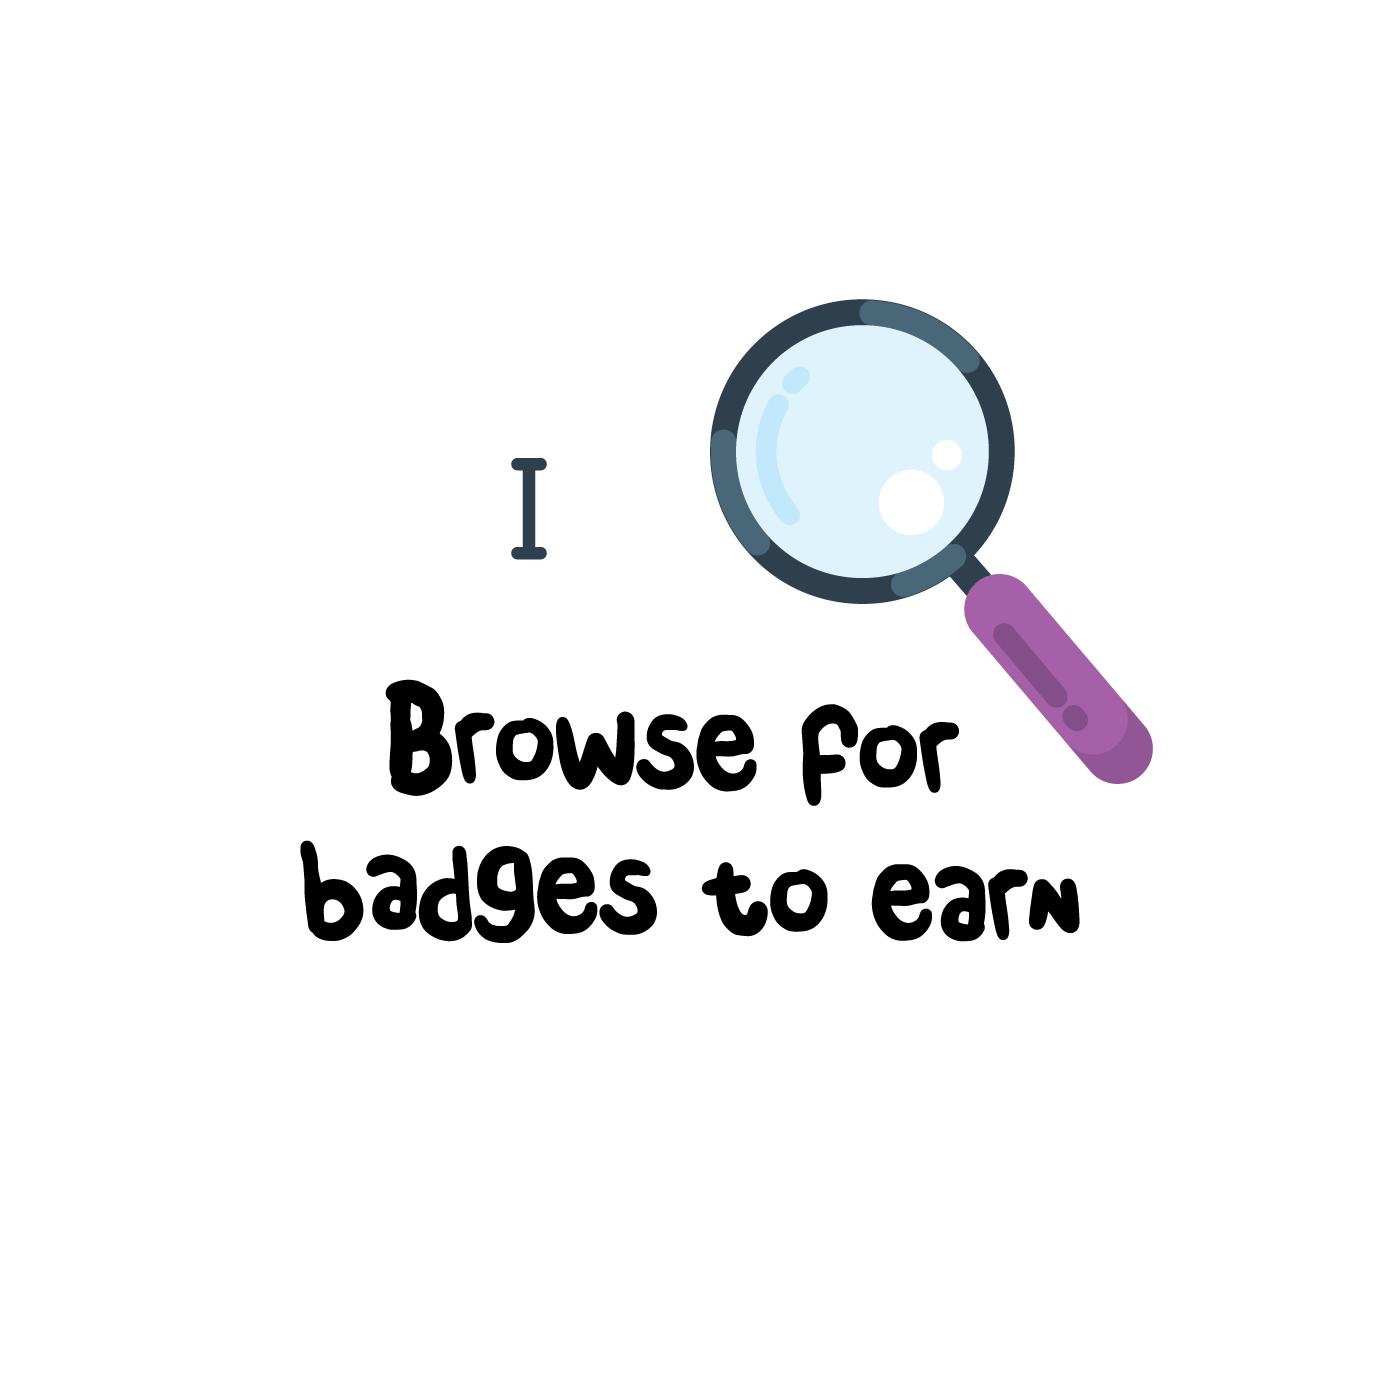 Browse for badges to earn